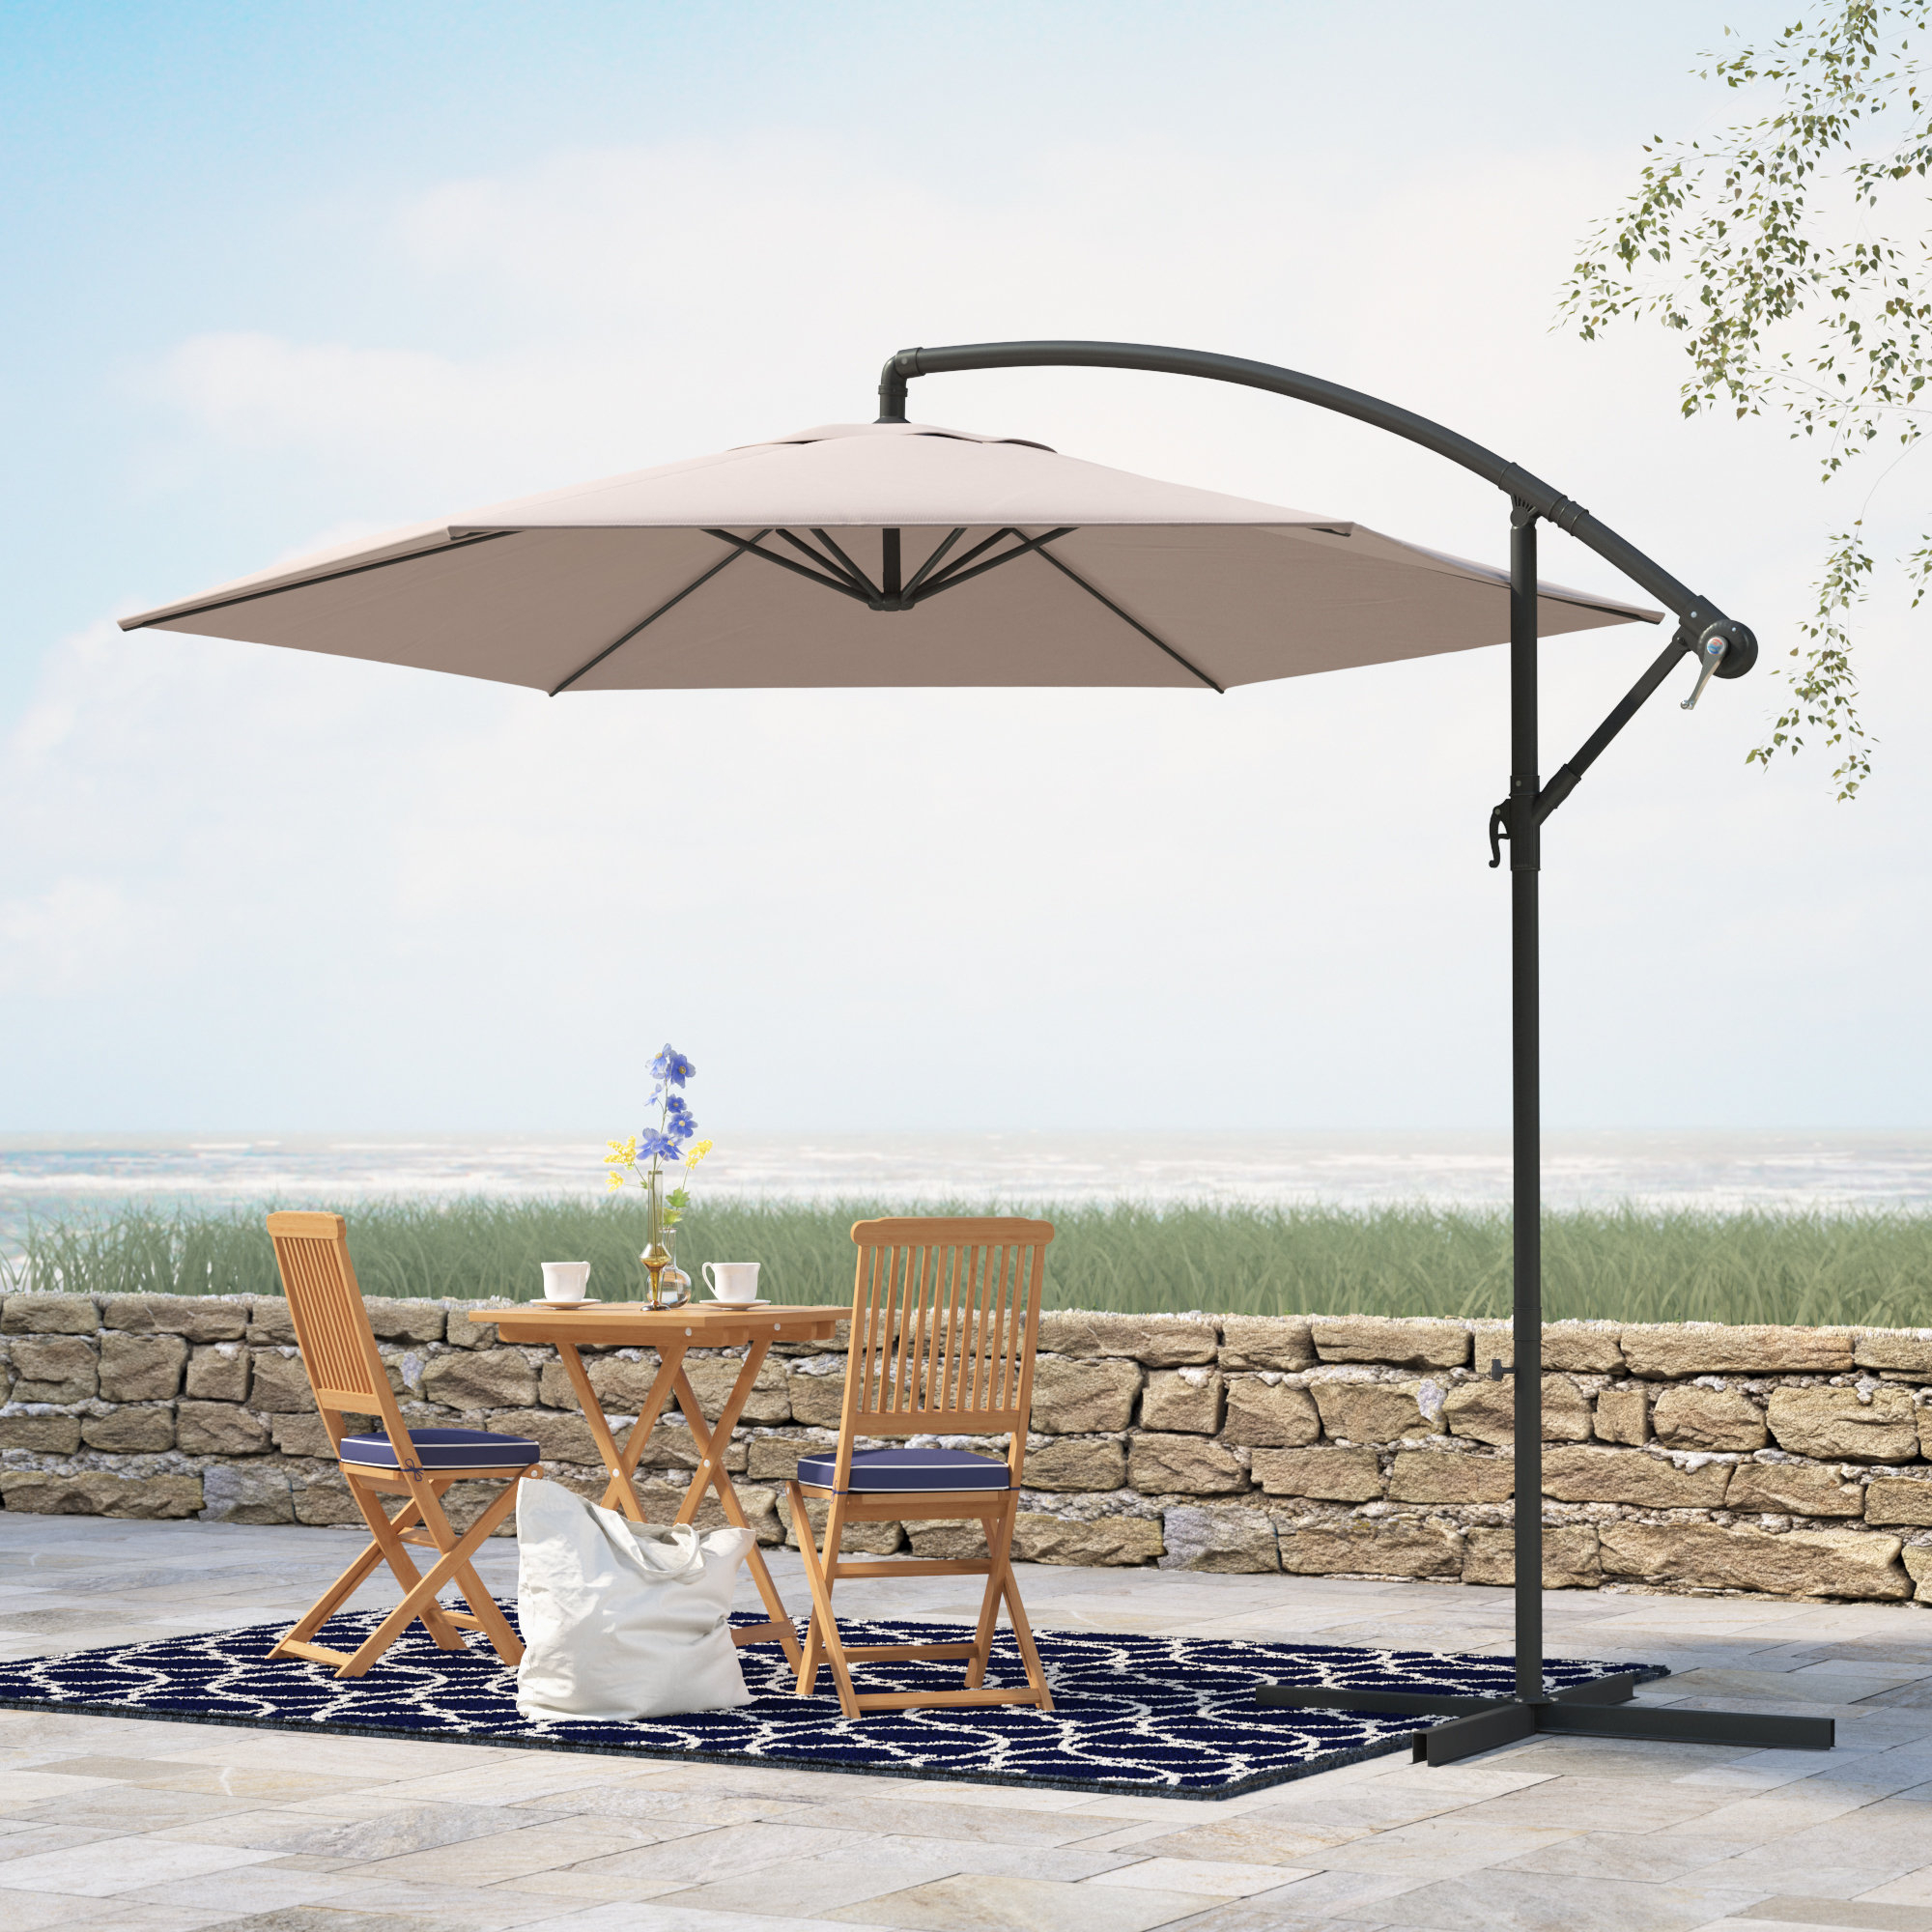 Kizzie Market Cantilever Umbrellas Intended For Most Up To Date Alyssa 10' Cantilever Umbrella (View 11 of 20)